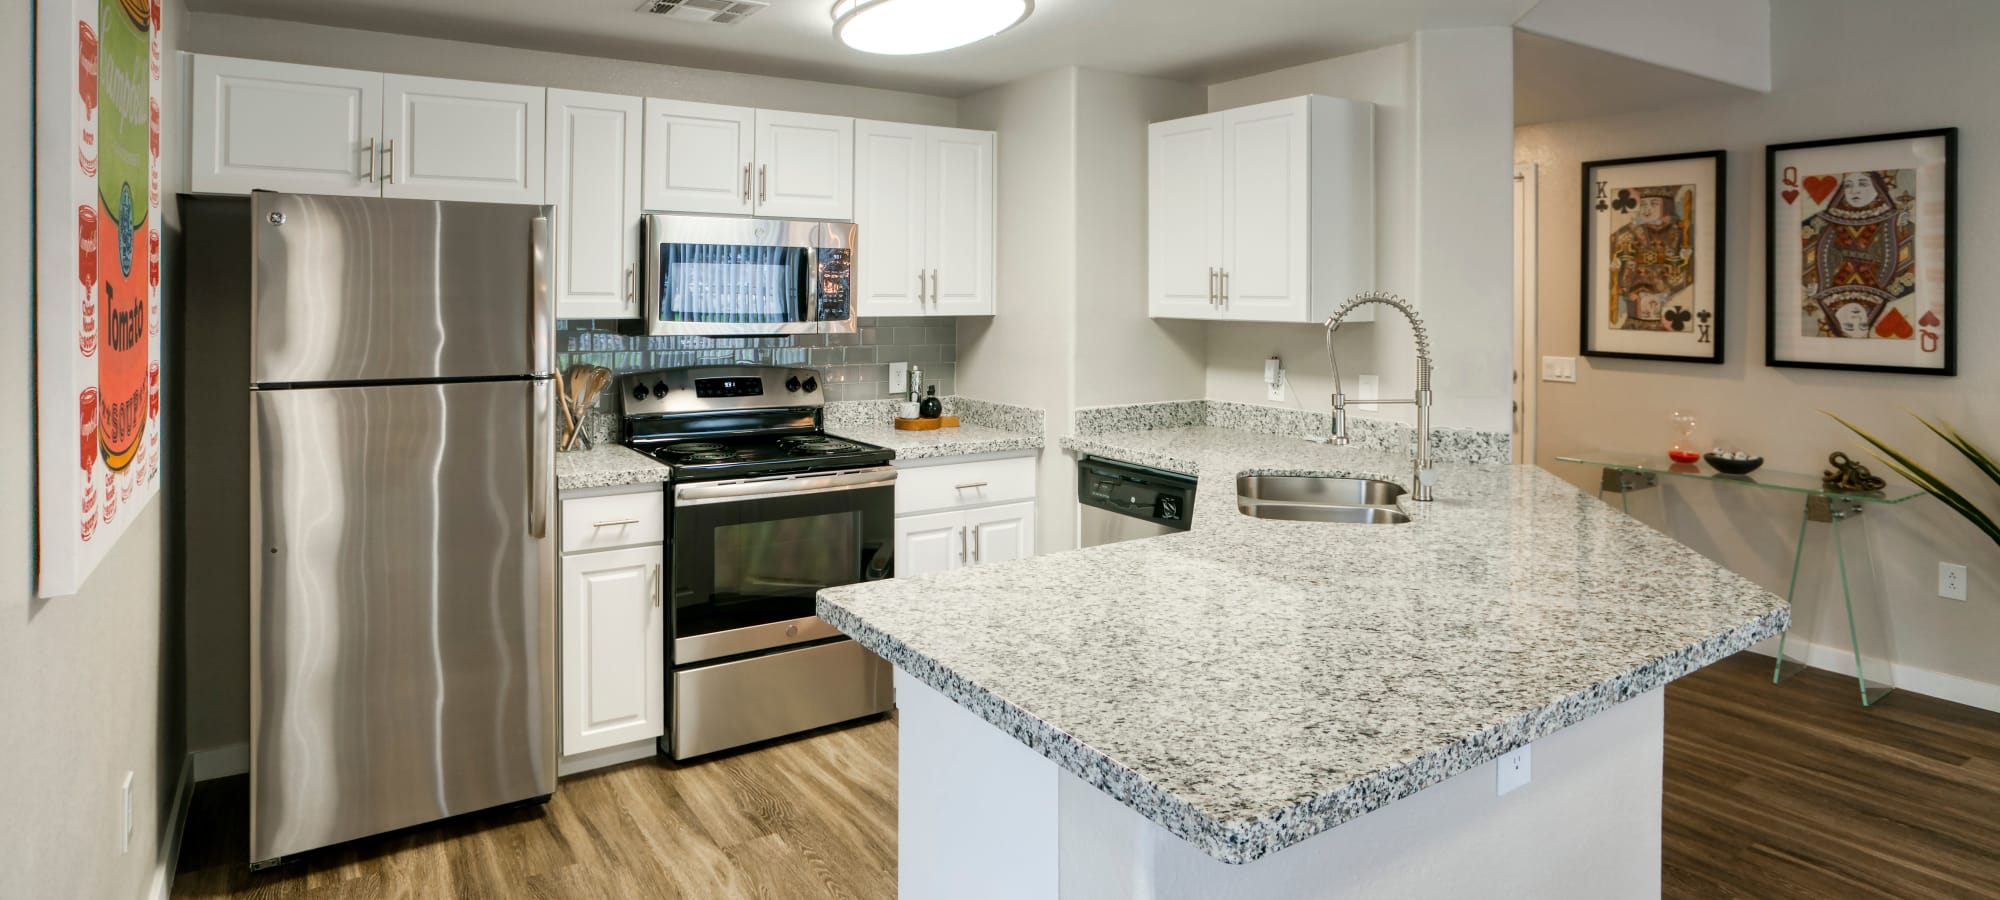 Stainless Steel Appliances in an Open Kitchen at Waterside at Ocotillo